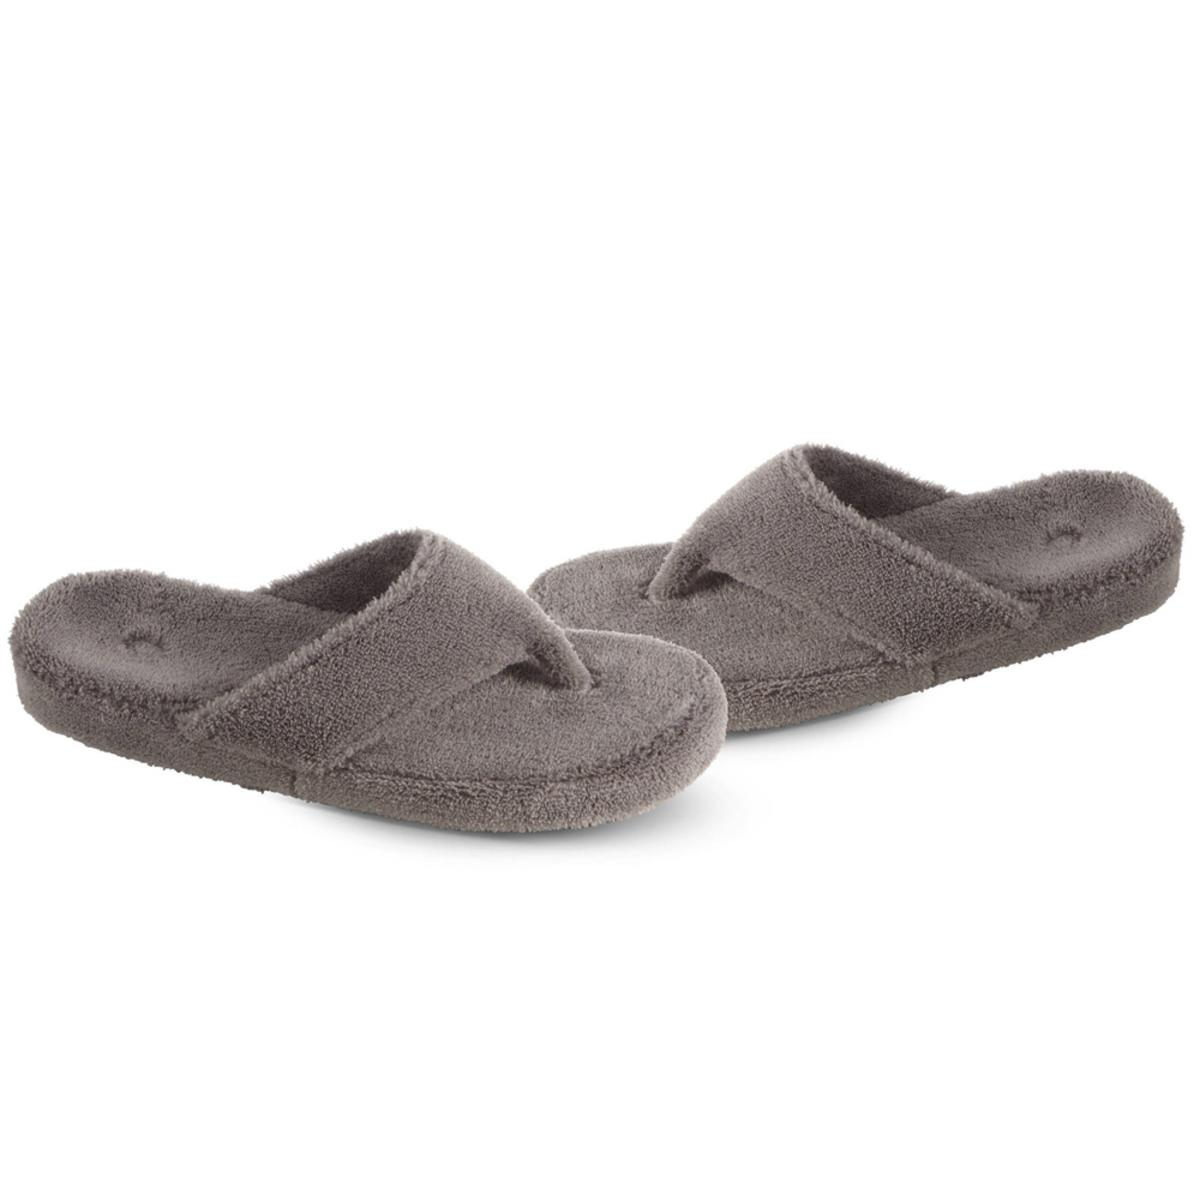 2cca9cb2b953 ACORN Women s Spa Thong Slippers - Grey - The Warming Store